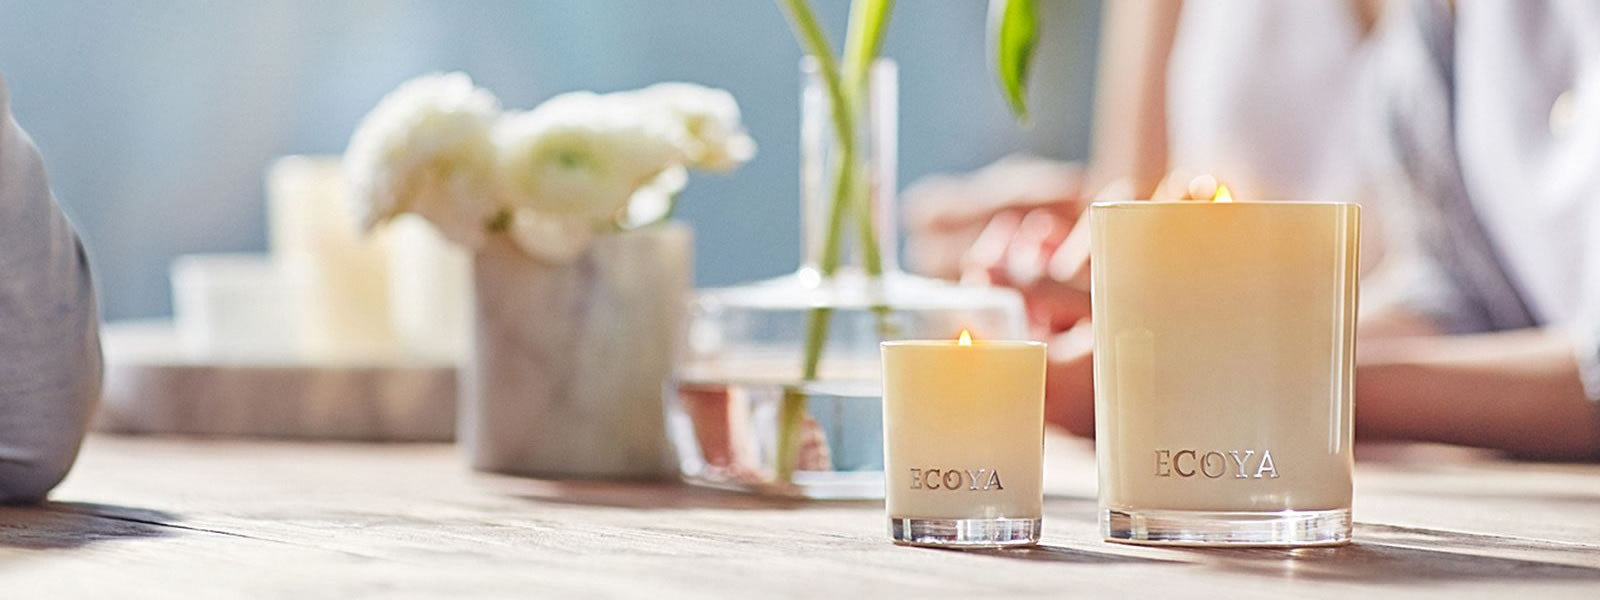 Ecoya Scented Candles